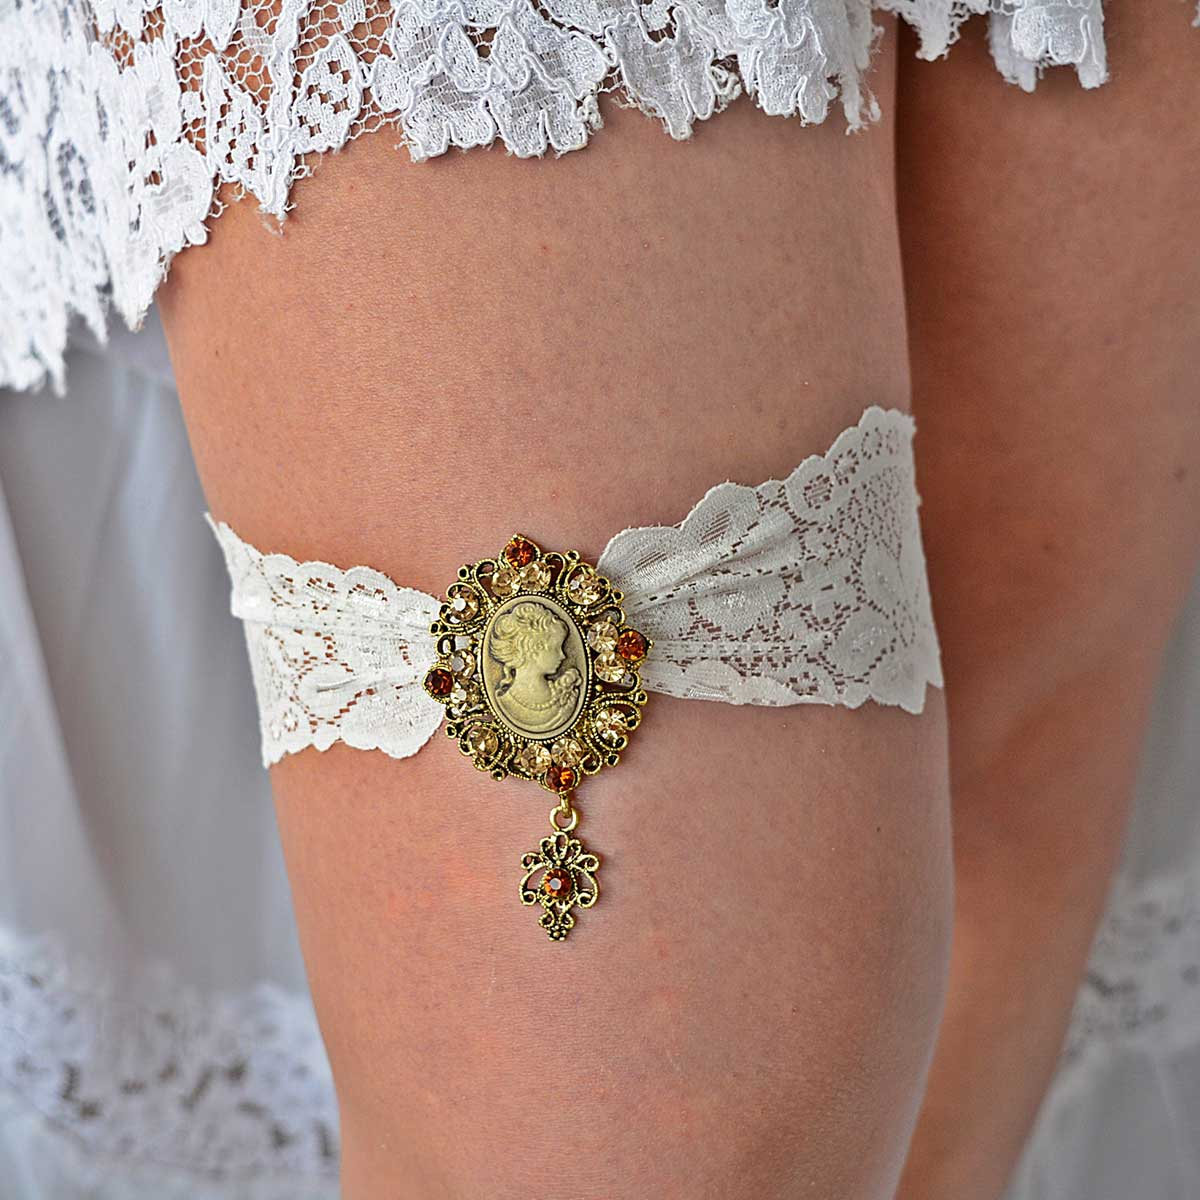 Elastic Ivory Bridal Garter Belt With Victorian Gold Rhinestone - Wedding Garter - SuzannaM Designs